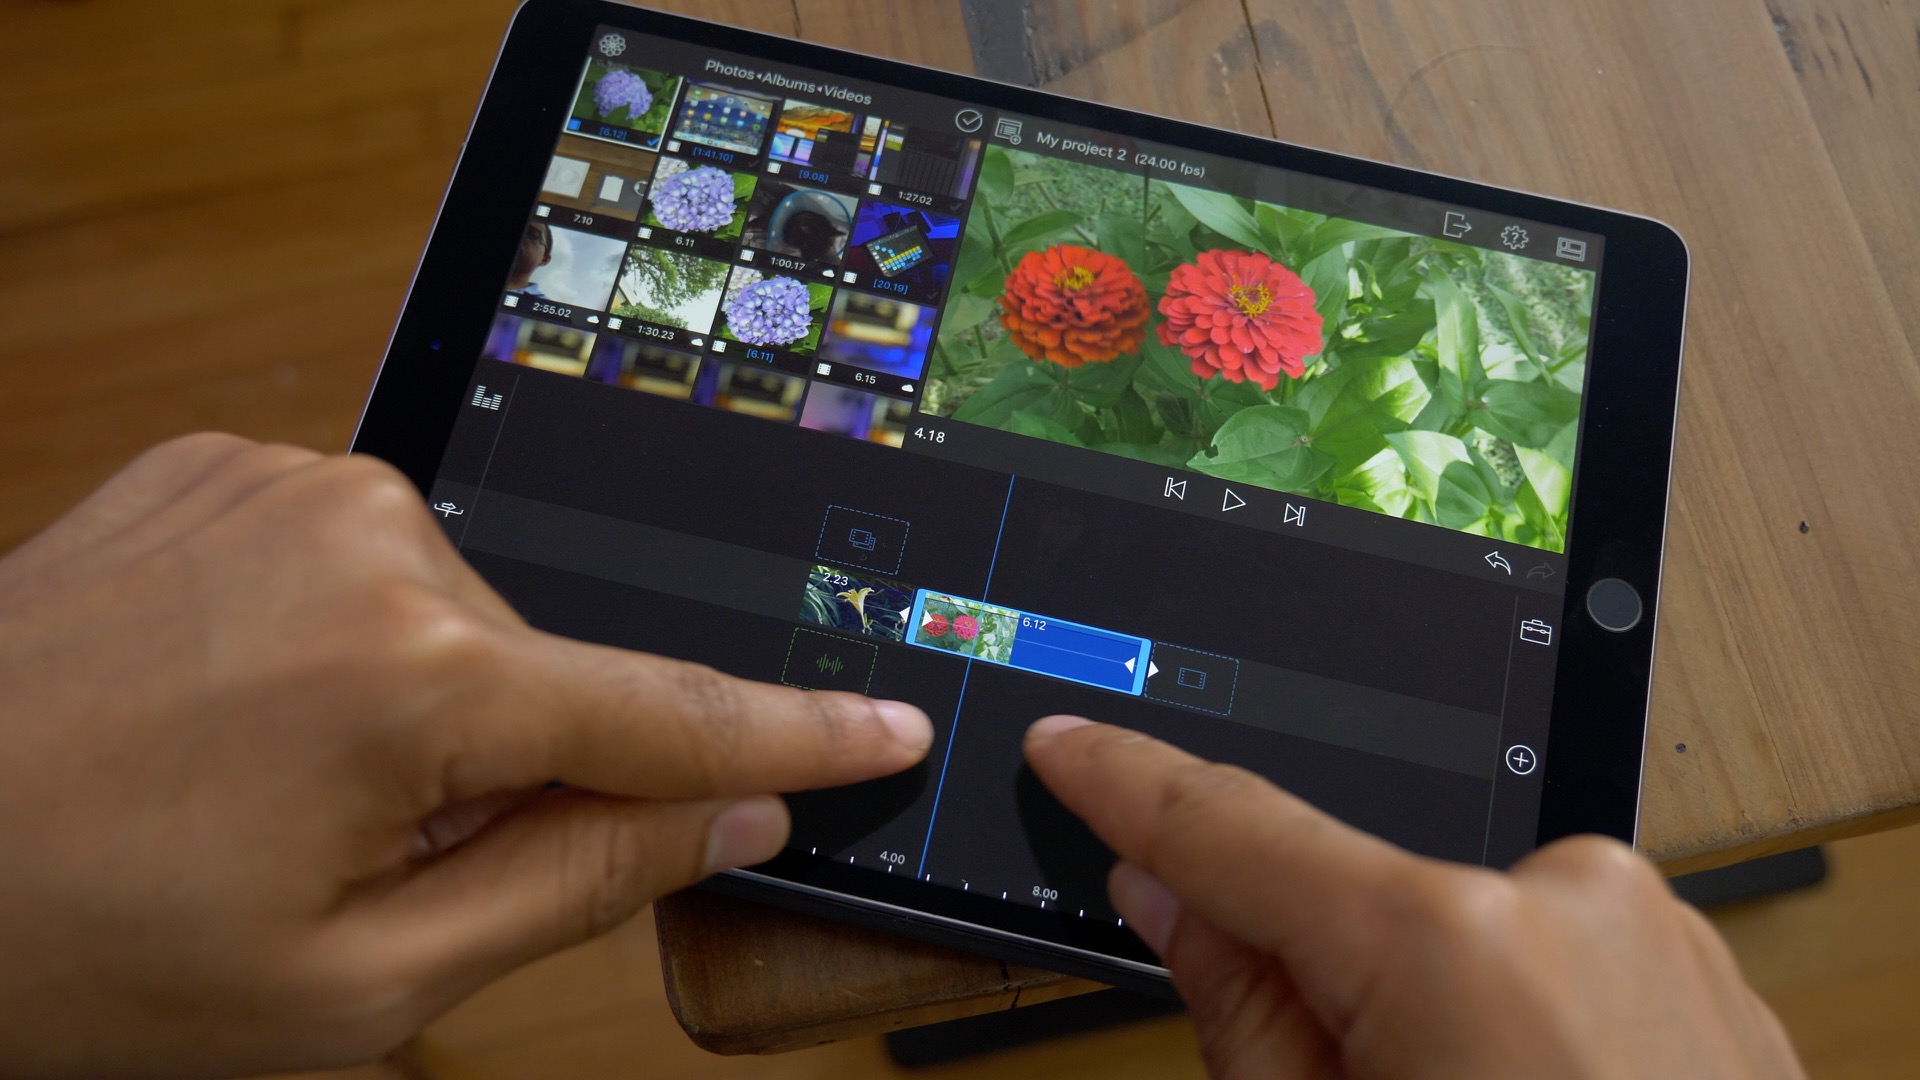 Hands-on: LumaFusion - this is the iPad video editing app we've been waiting for [Video] - 9to5Mac